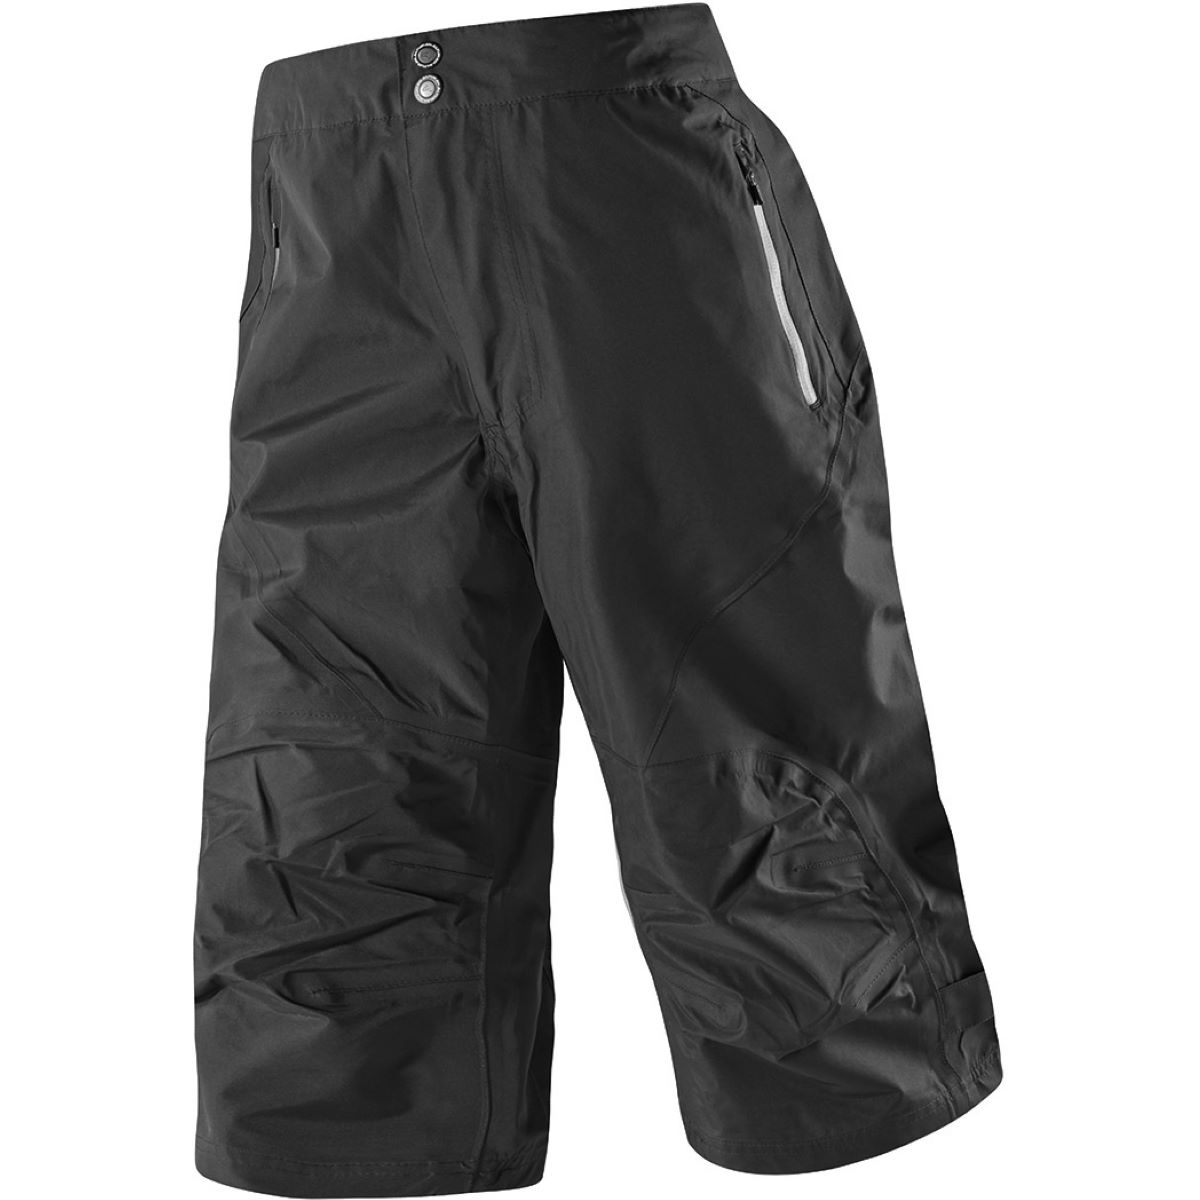 Short 3/4 Altura Attack (imperméable) - S Noir Shorts VTT